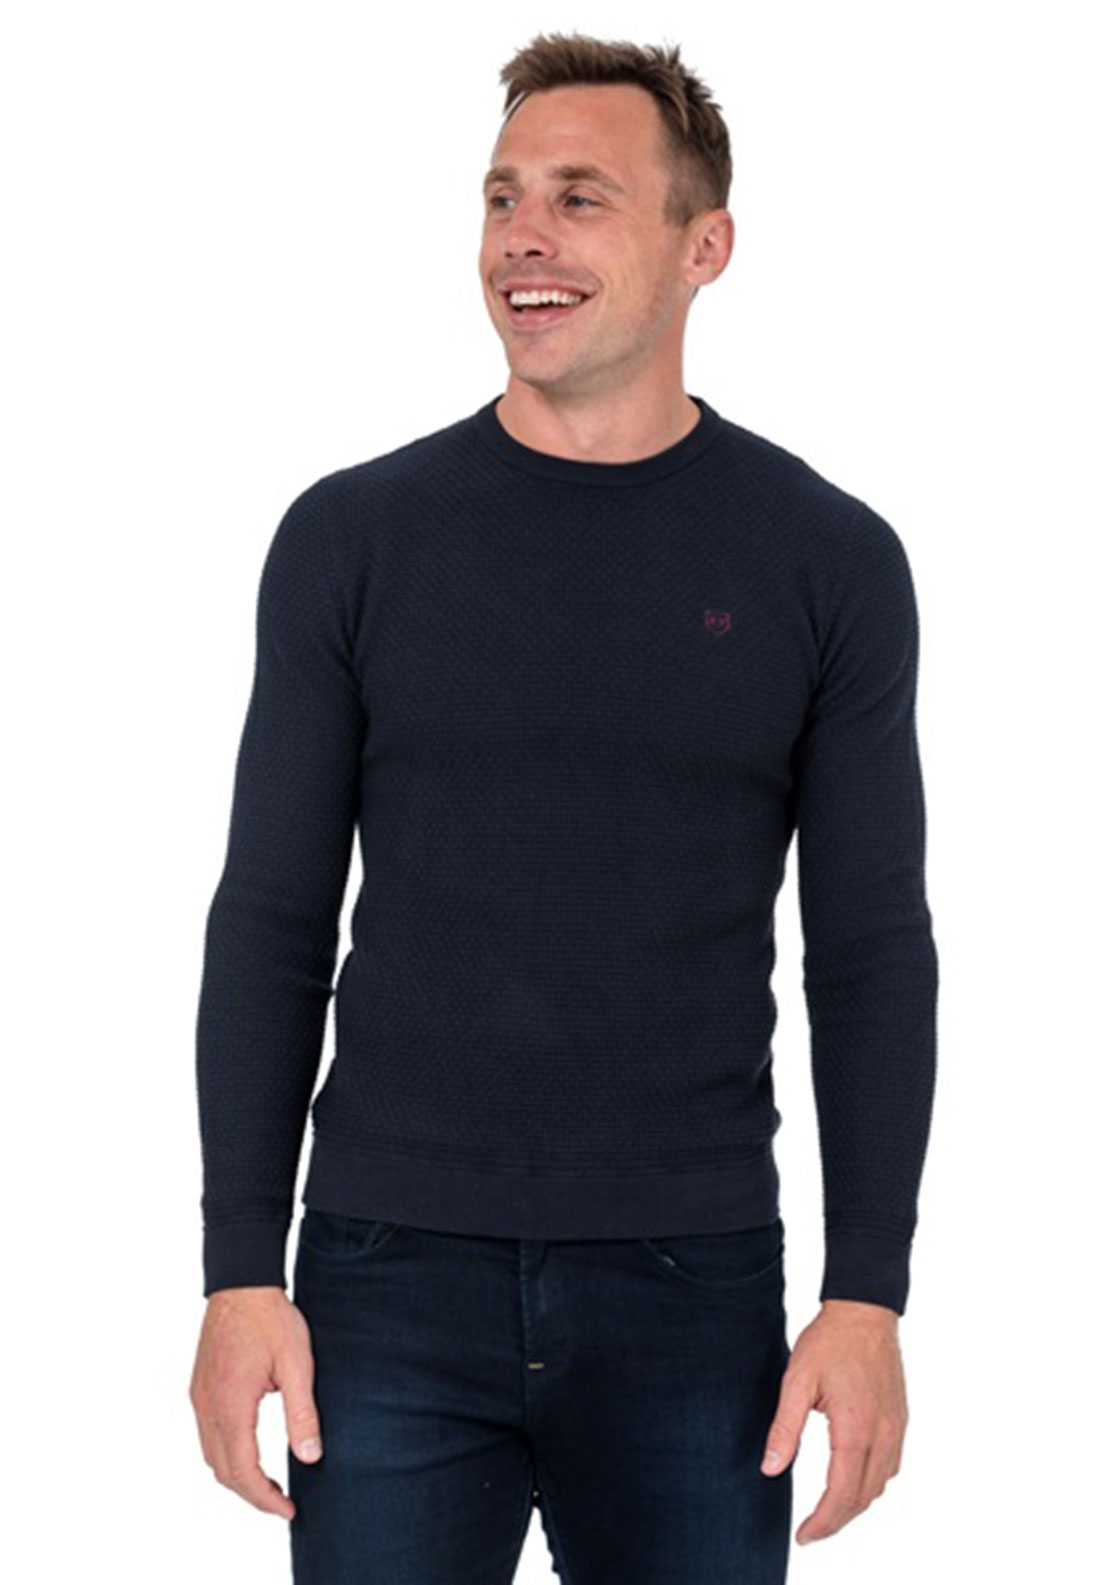 XV Kings by Tommy Bowe Corinthians Sweater, Navy